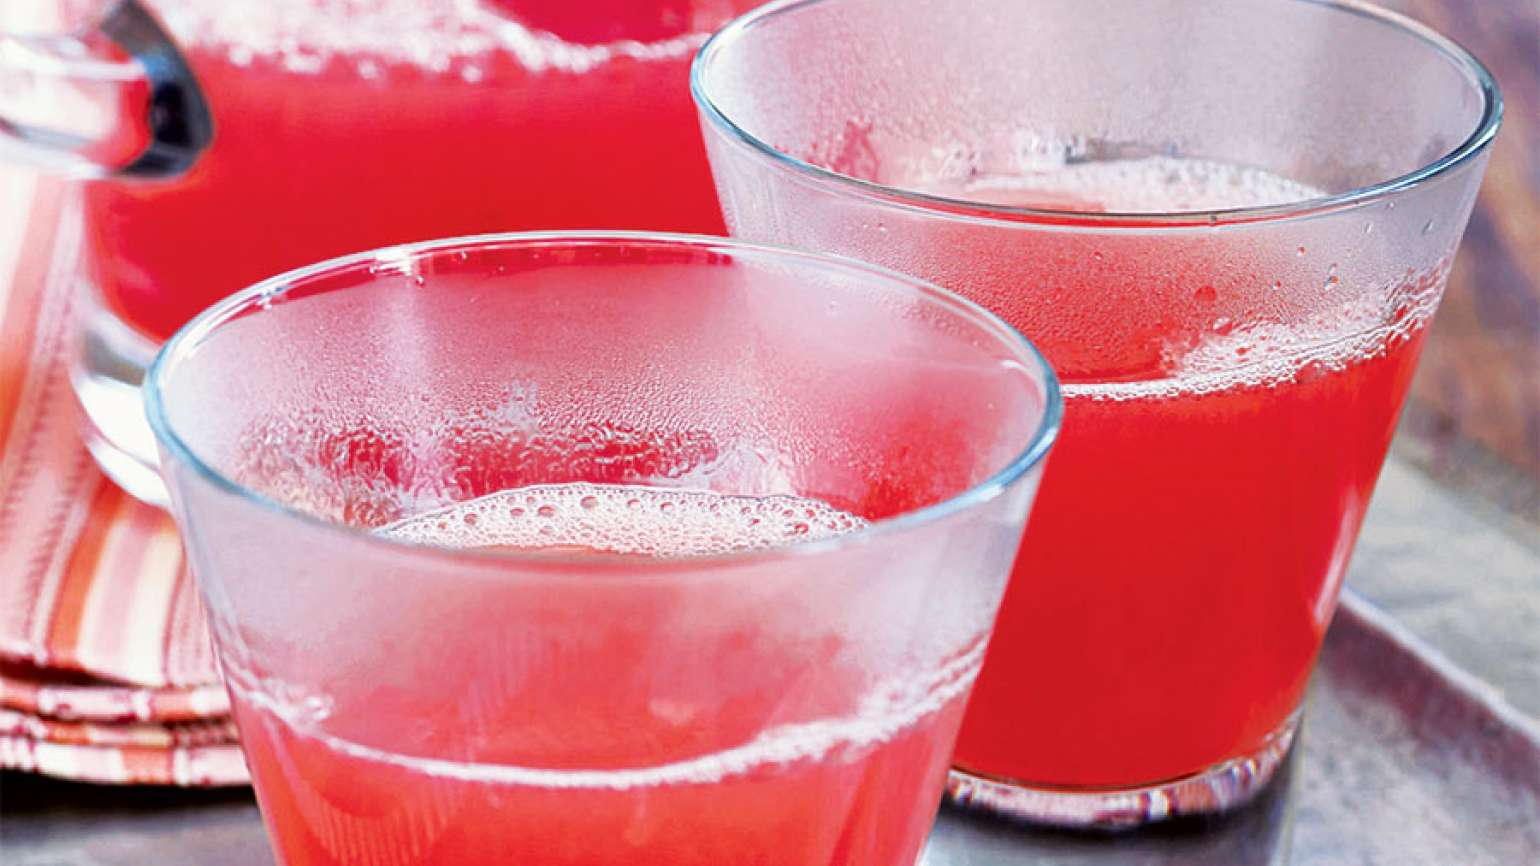 The Heiss's pink punch